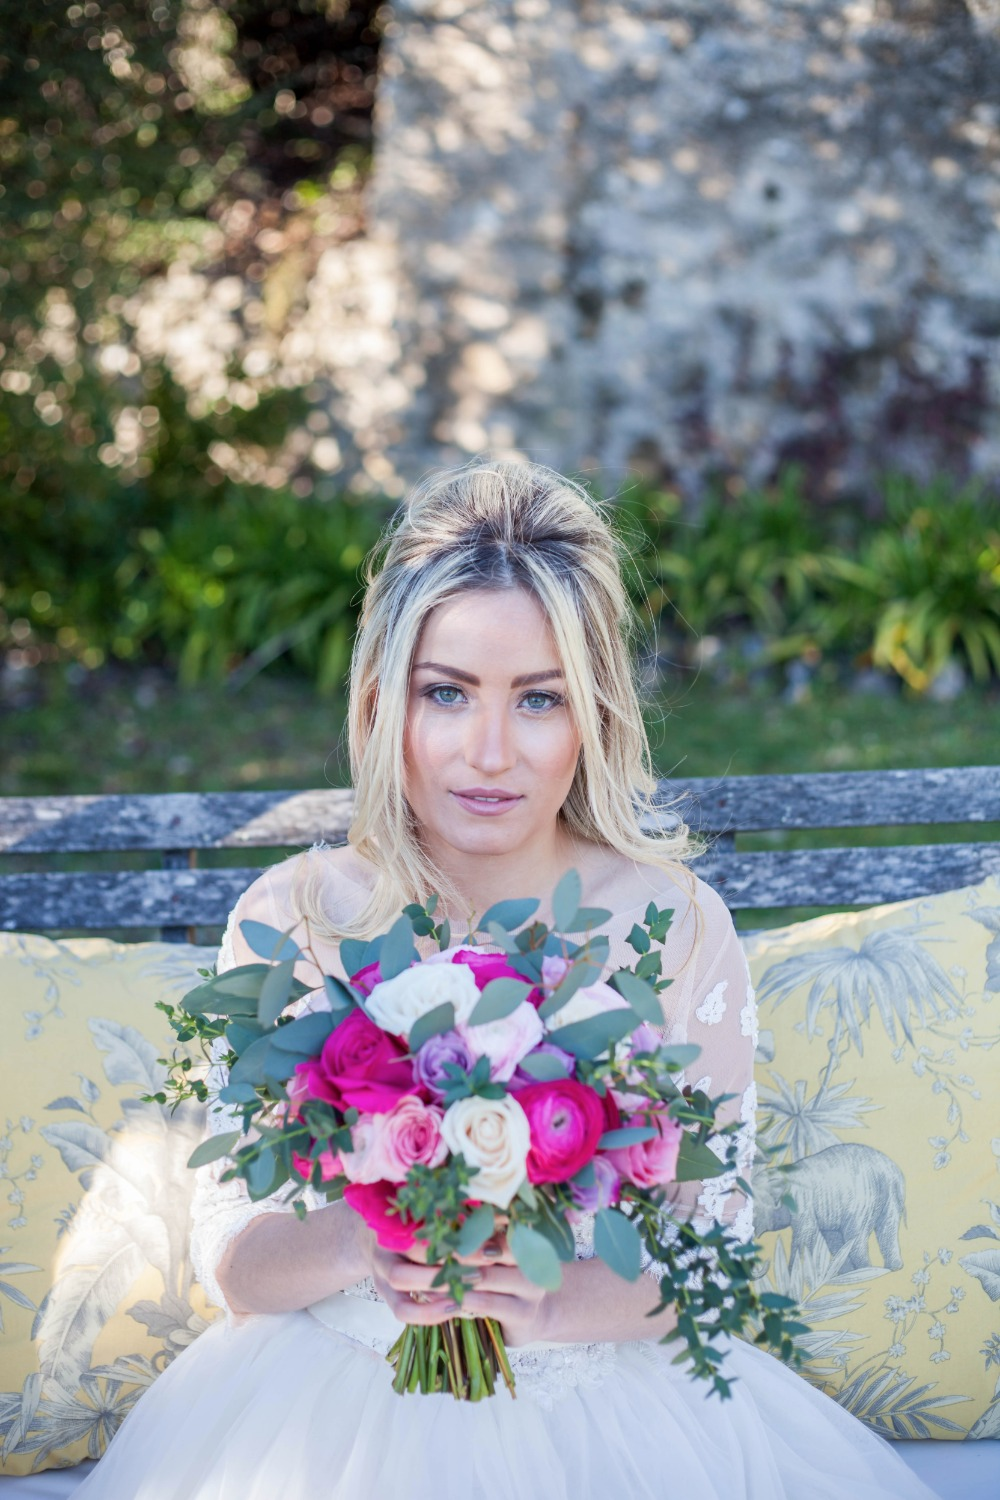 Gorgeous bridal look and bouquet